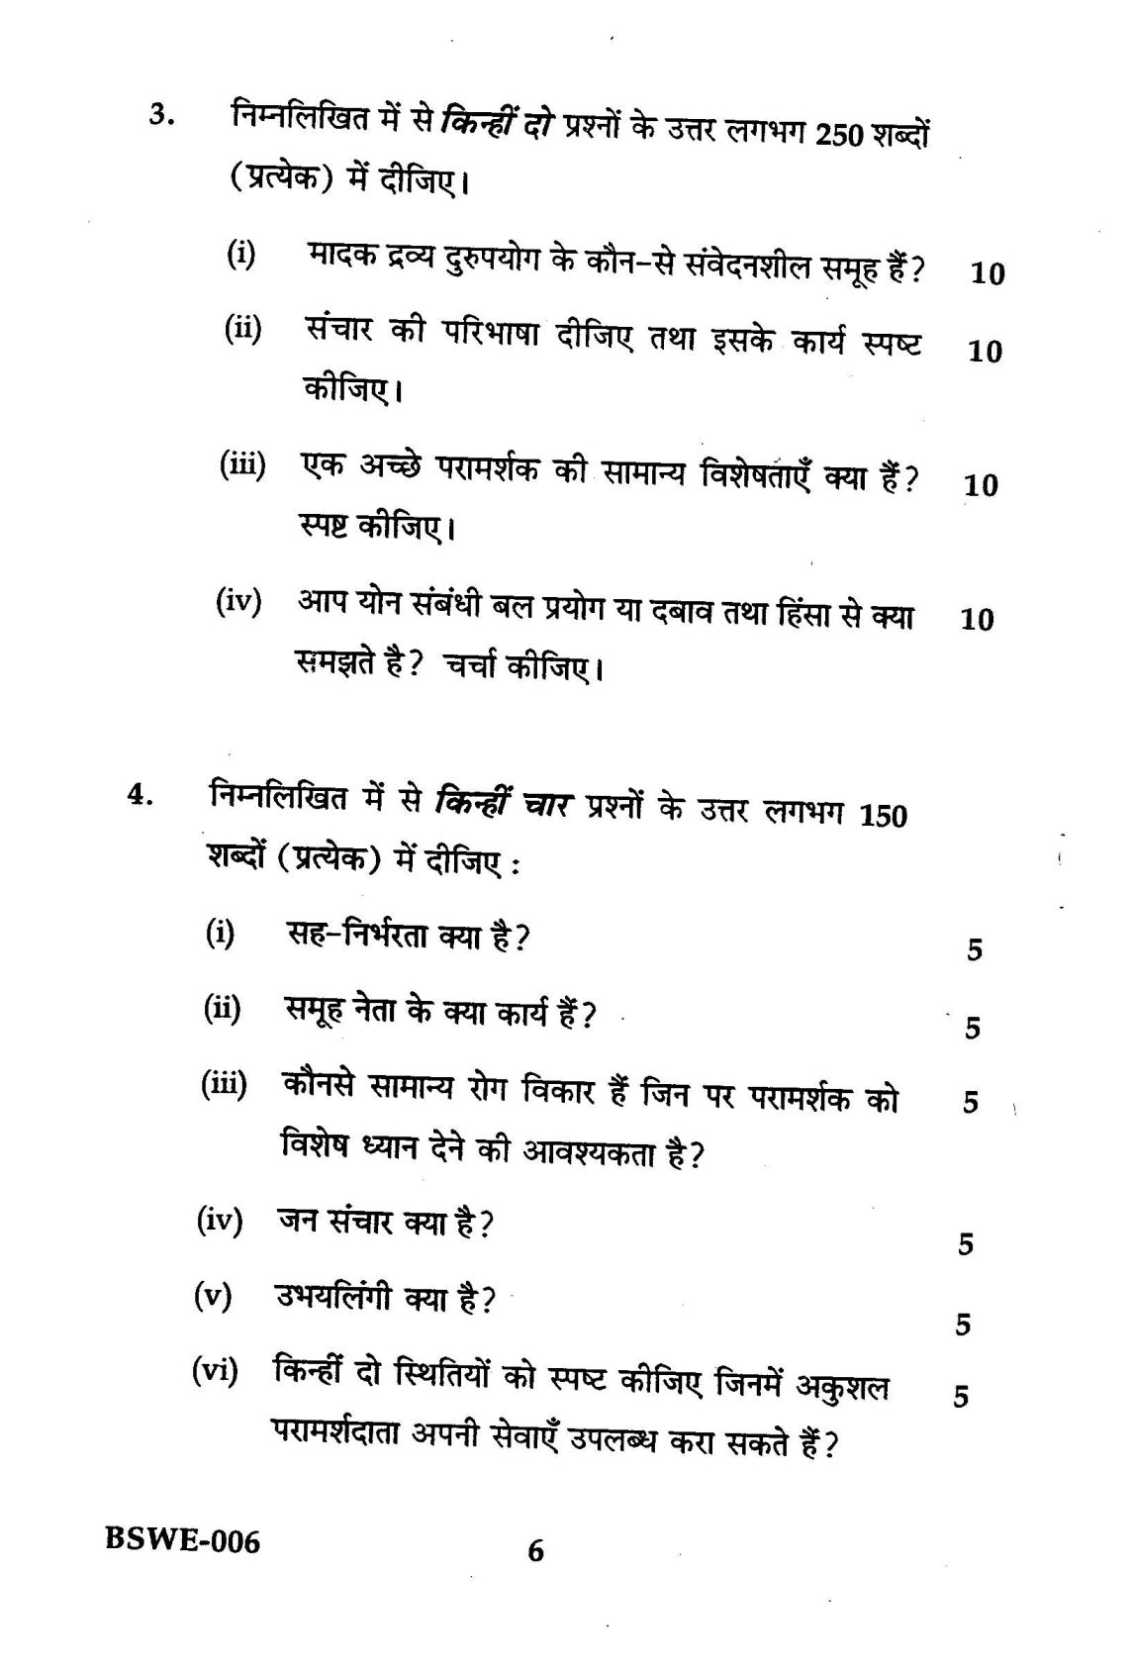 Ignou Bsw Substance Abuse And Counseling Exam Previous Years Question Papers